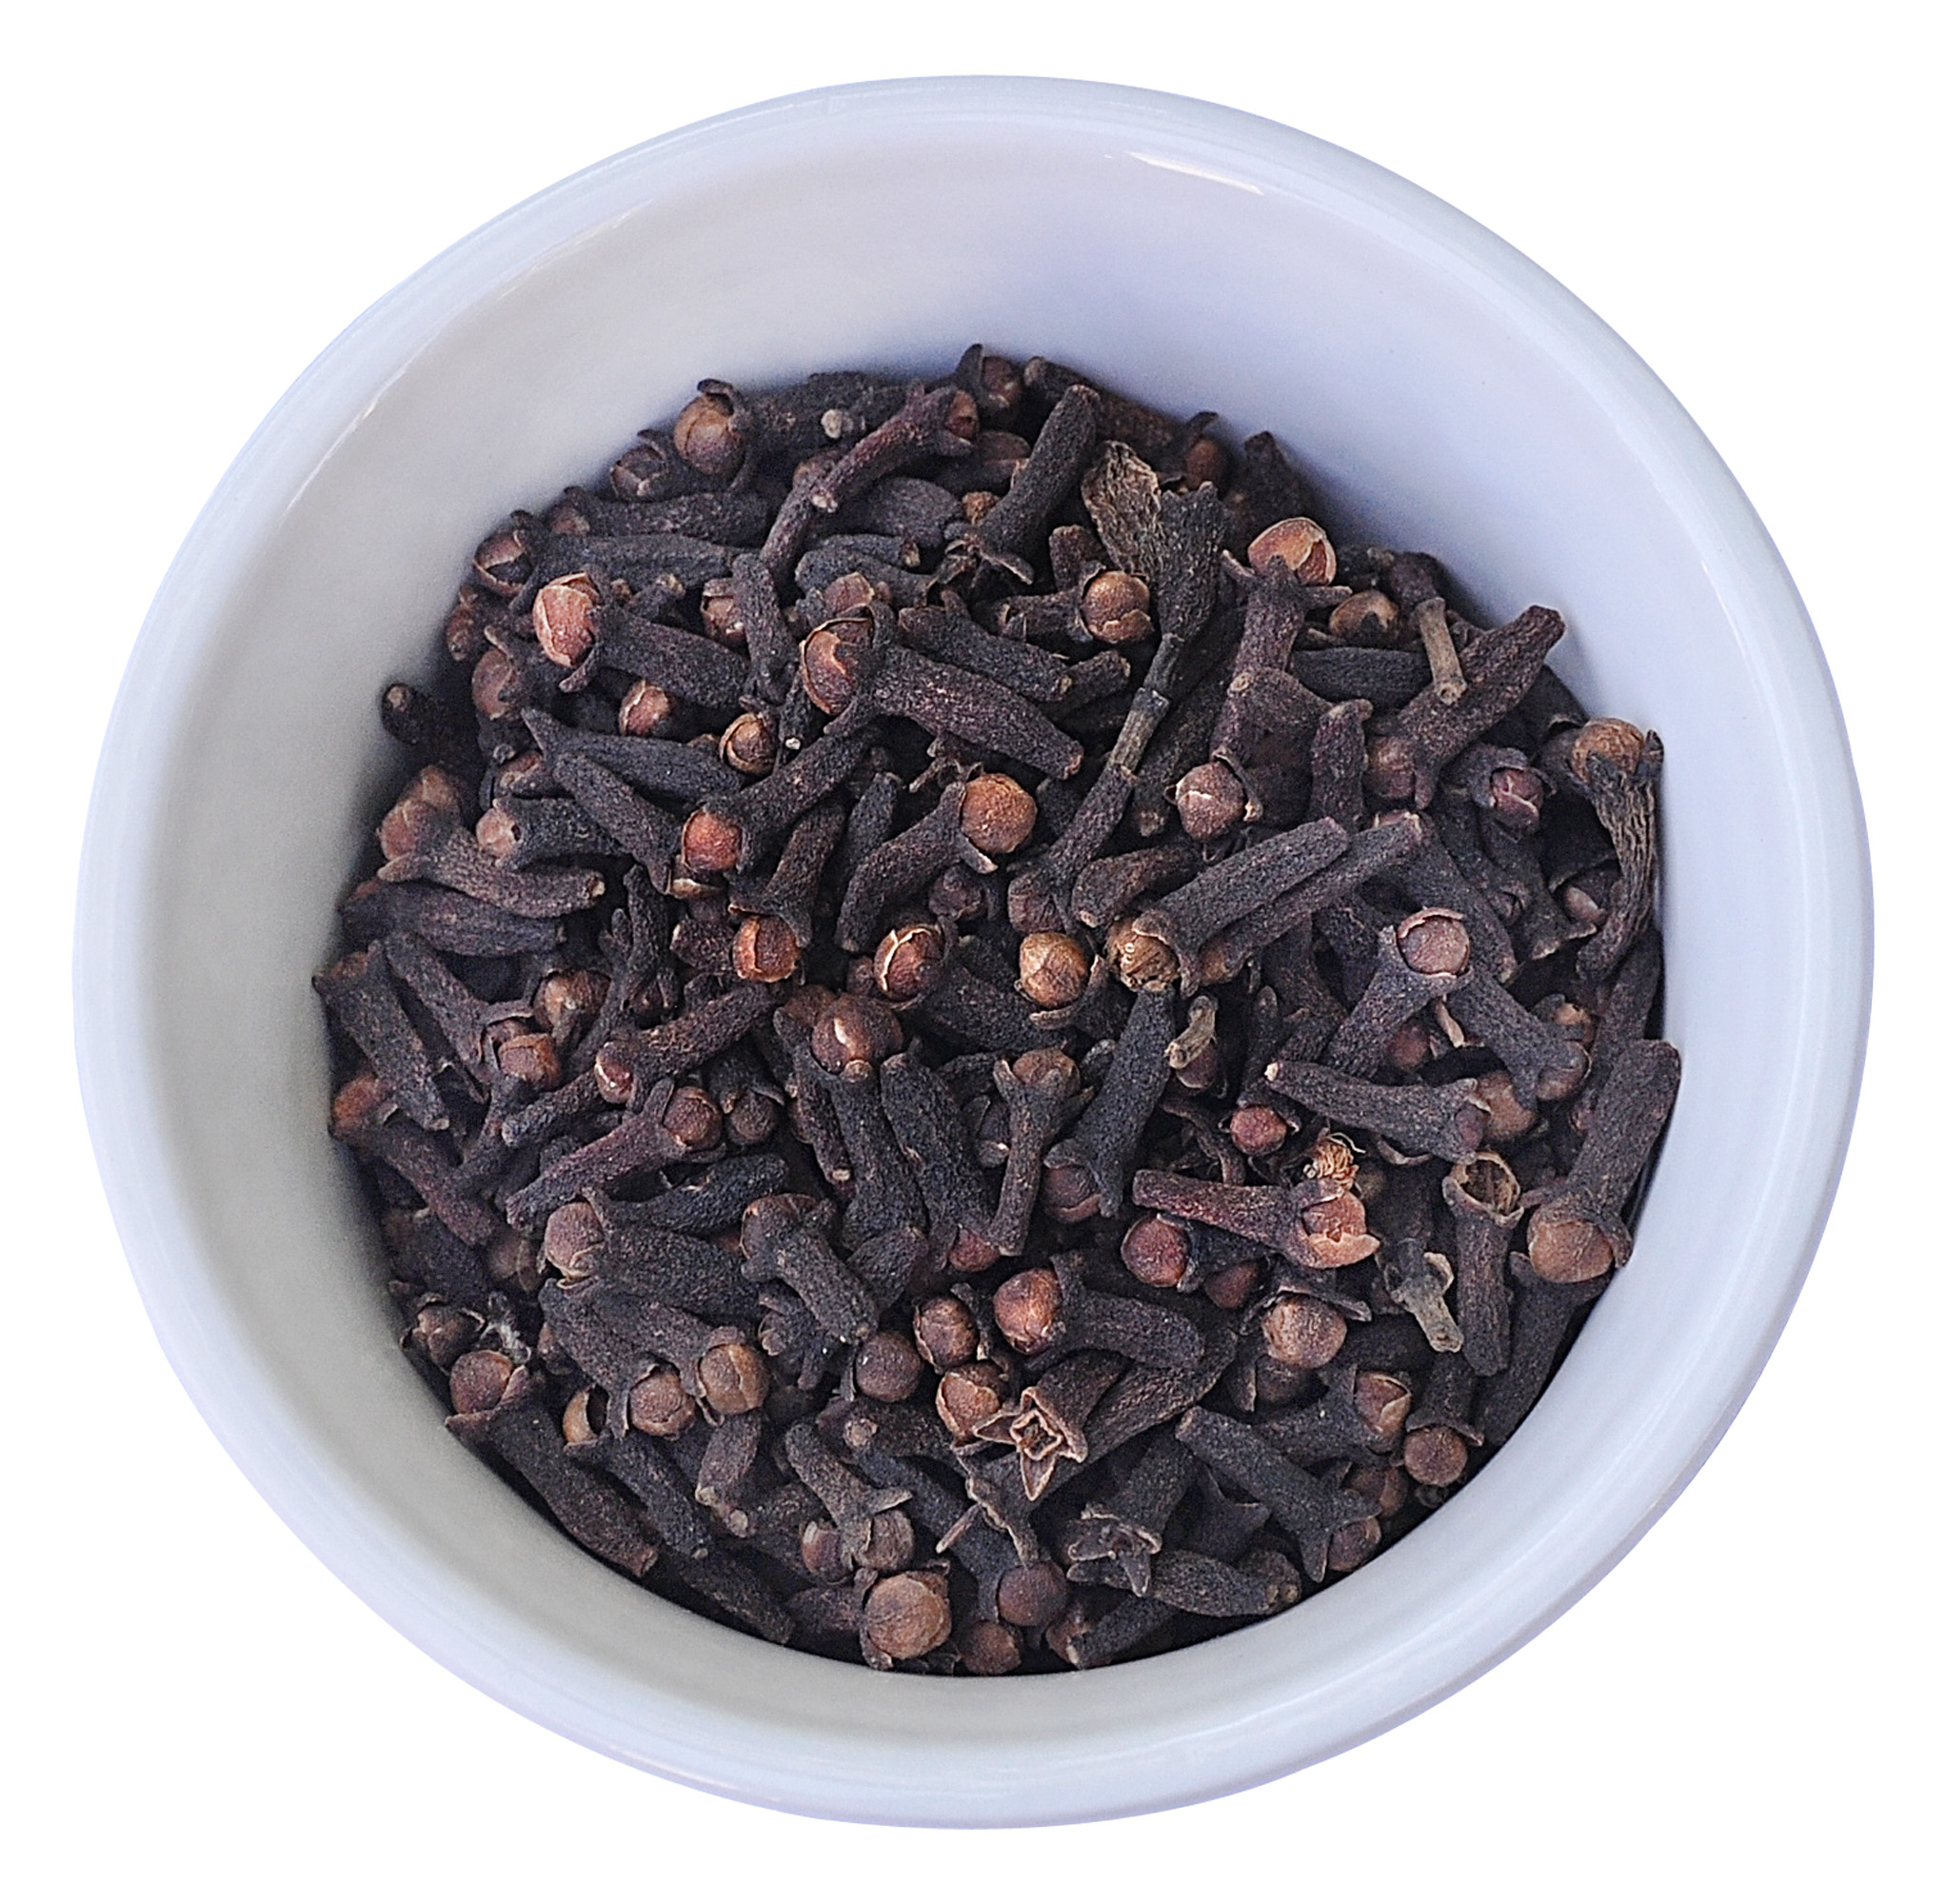 Cloves are known to have a number of health benefits. Cloves have been used for medicinal purposes, as a cooking ingredient, as a flavoring agent in drinks, to promote gum health.